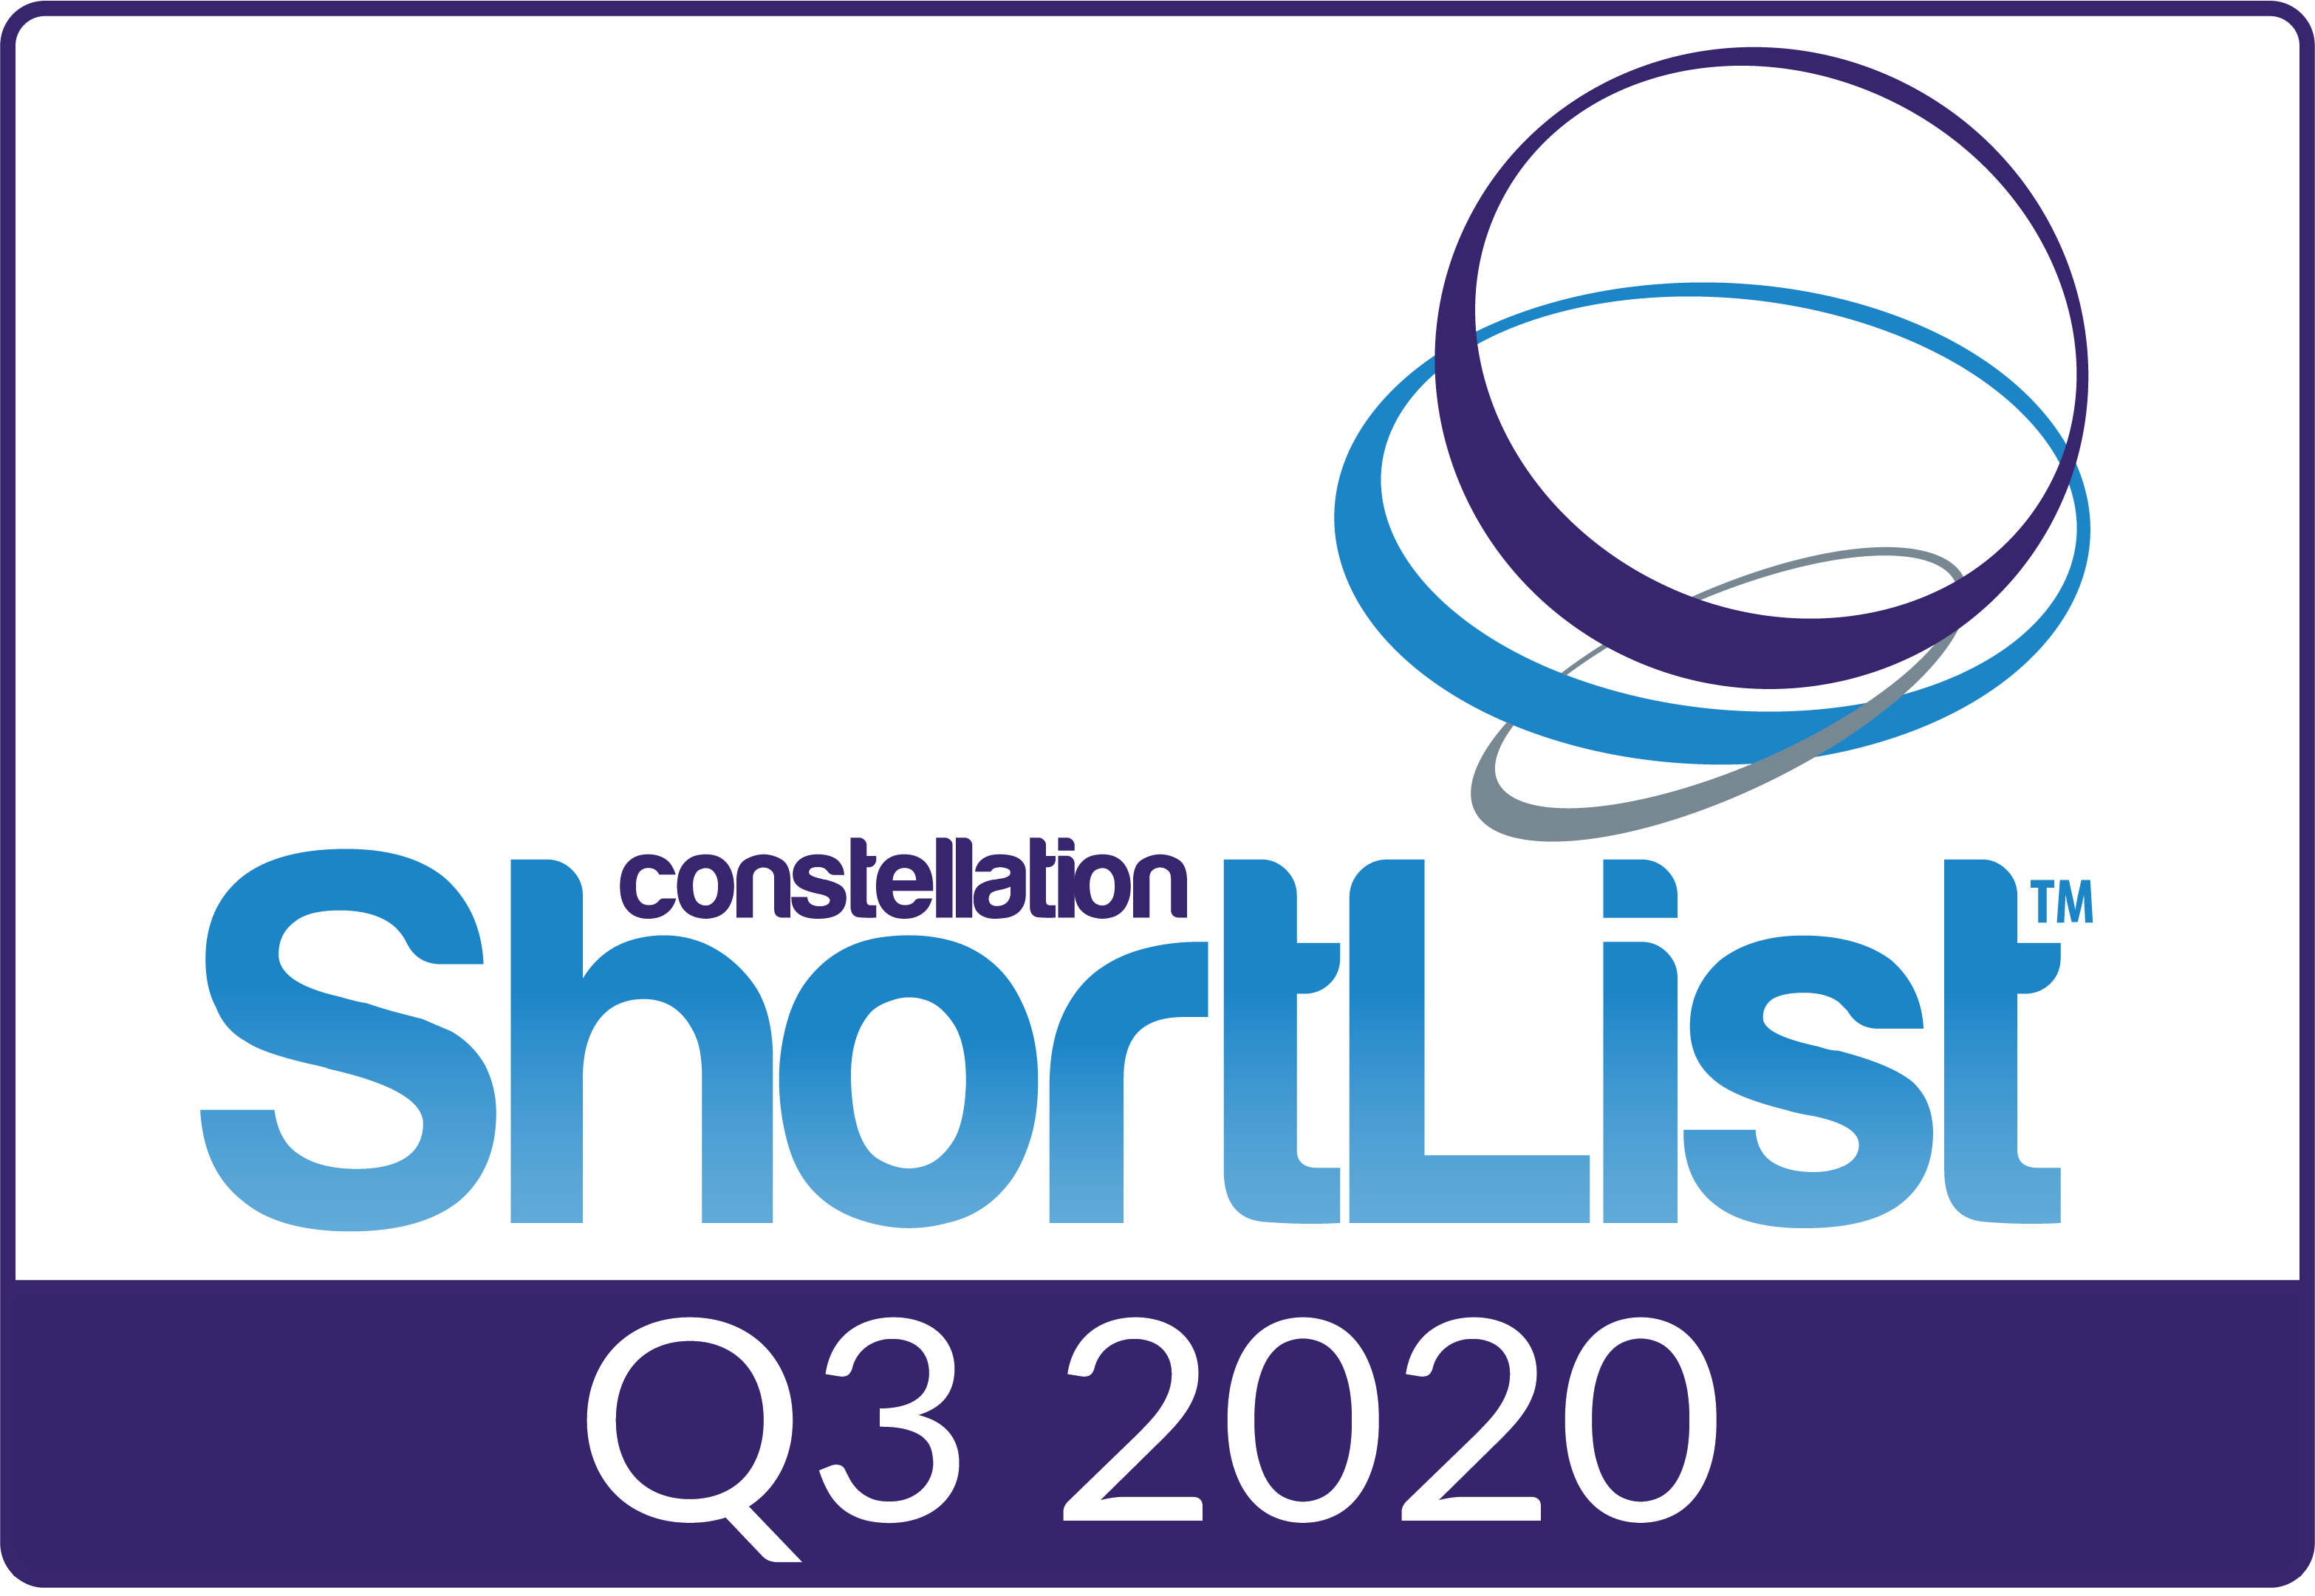 Constellation shortlist